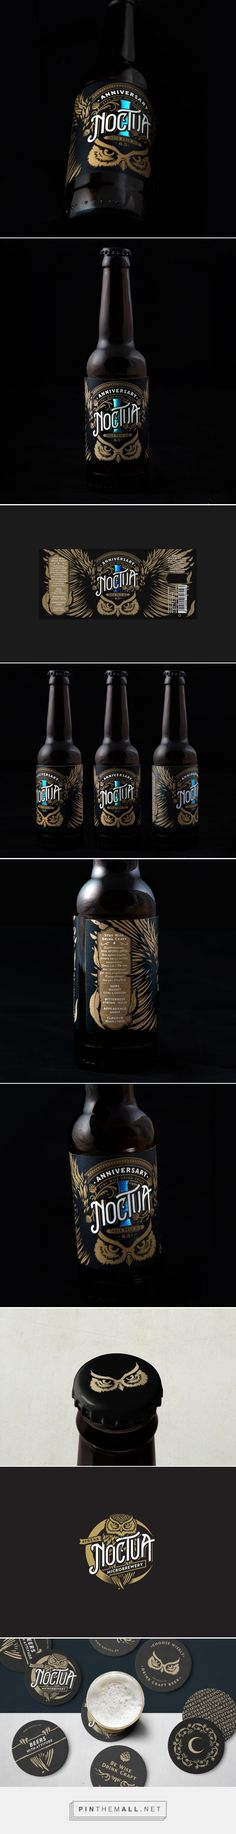 Noctua One Year Anniversary IPA - Packaging of the World - Creative Package Design Gallery - http://www.packagingoftheworld.com/2018/01/noctua-one-year-anniversary-ipa.html